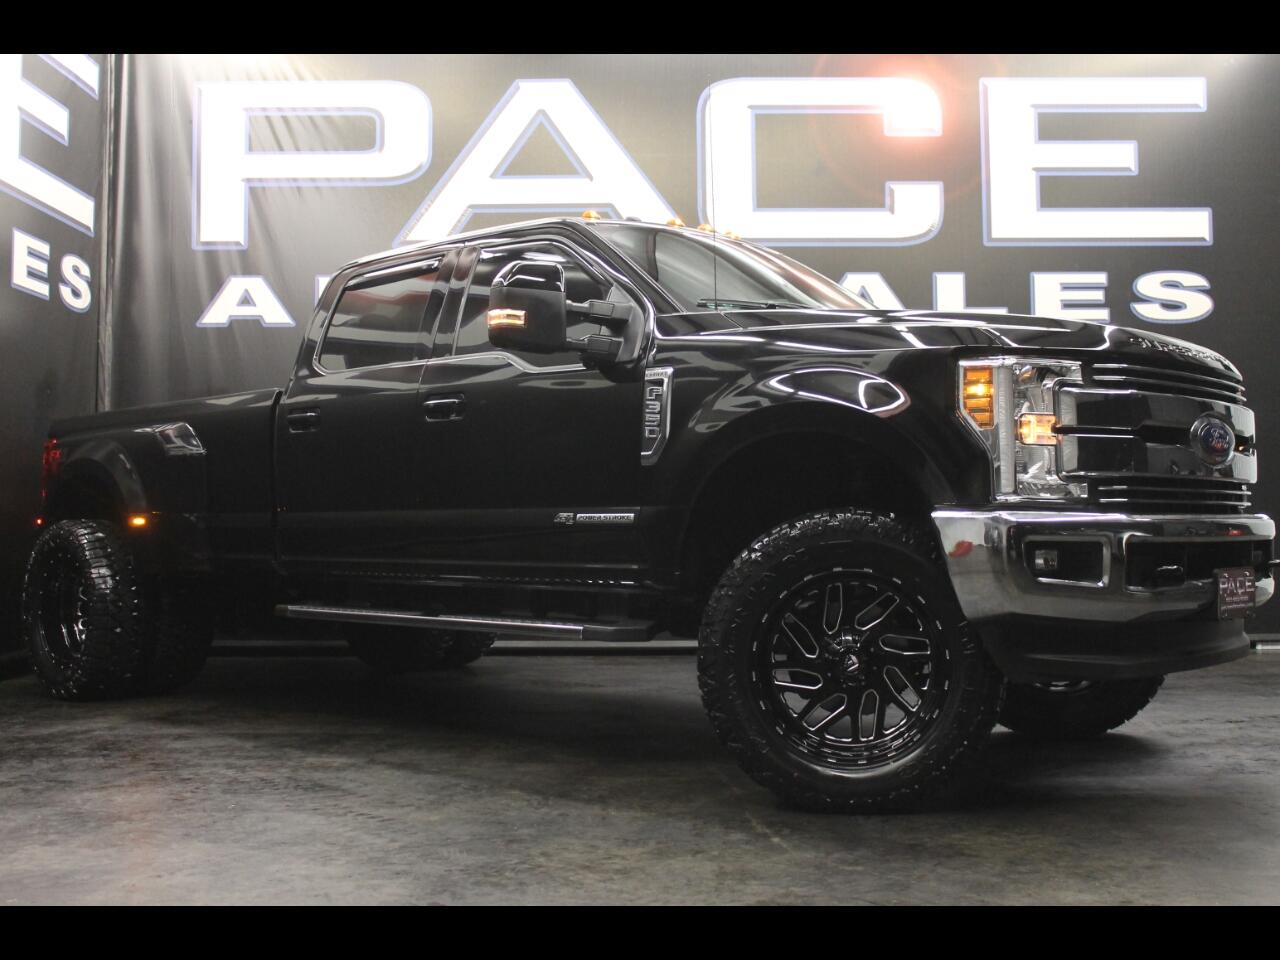 2018 Ford Super Duty F-350 DRW Lariat 4WD Crew Cab Lifted Custom